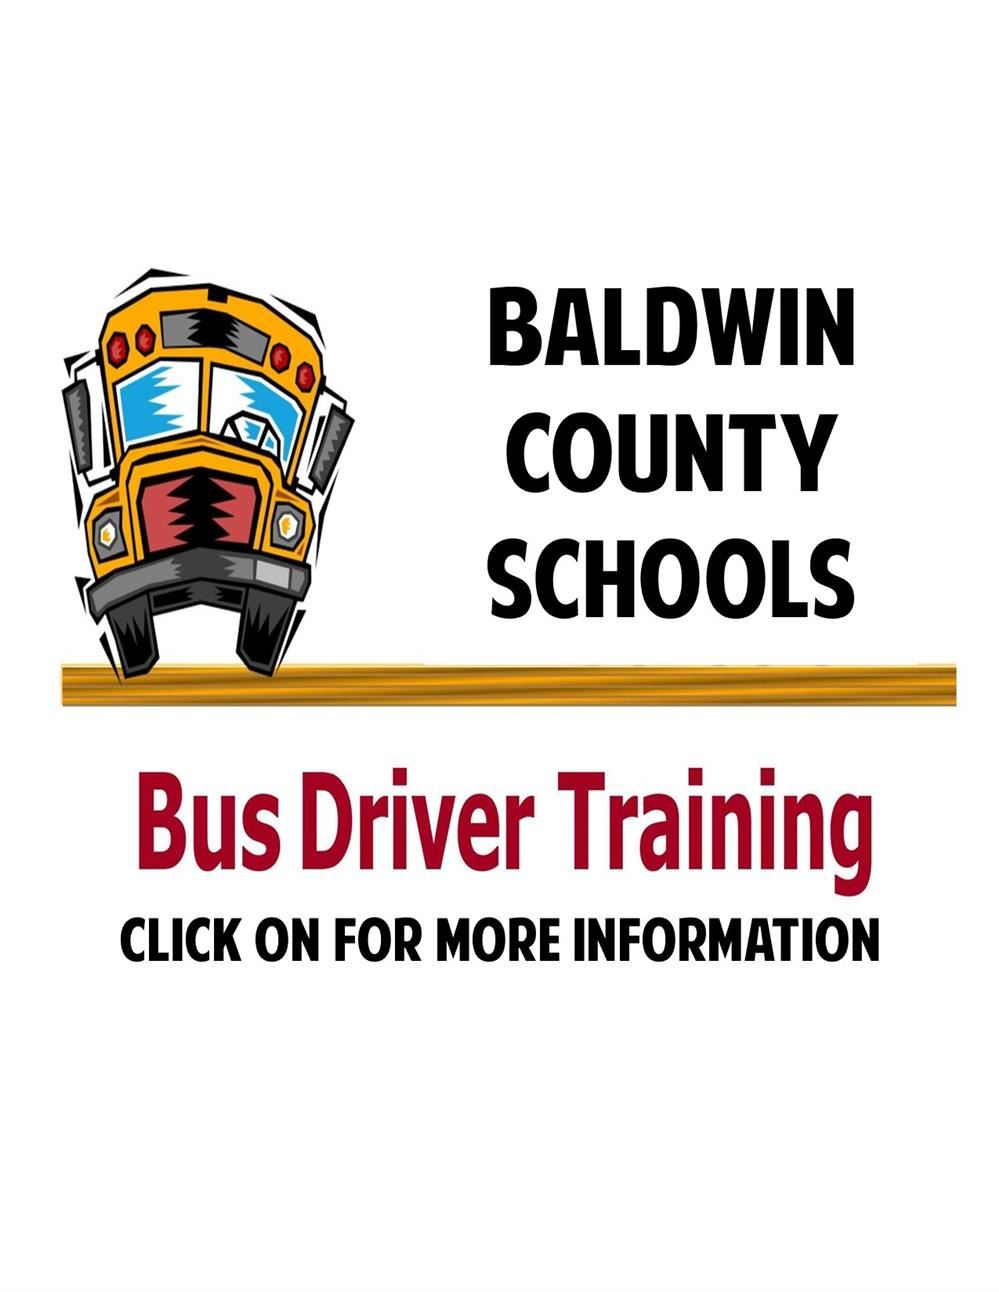 BALDWIN COUNTY SCHOOLS 2021 BUS DRIVER TRAINING INFORMATION